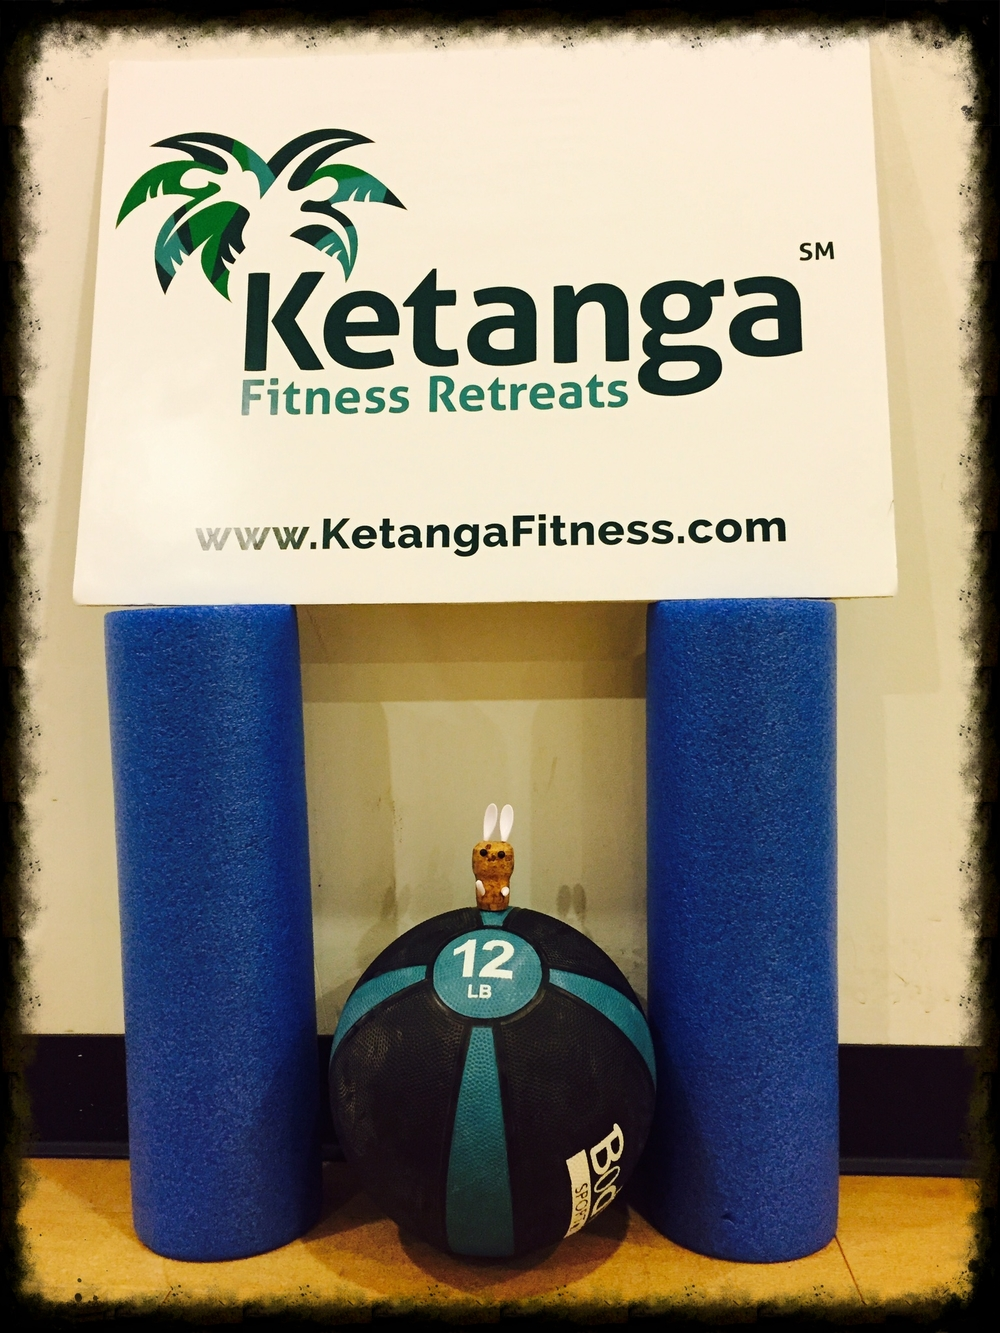 Ketanga Fitness Retreats know how to make a guy sweat